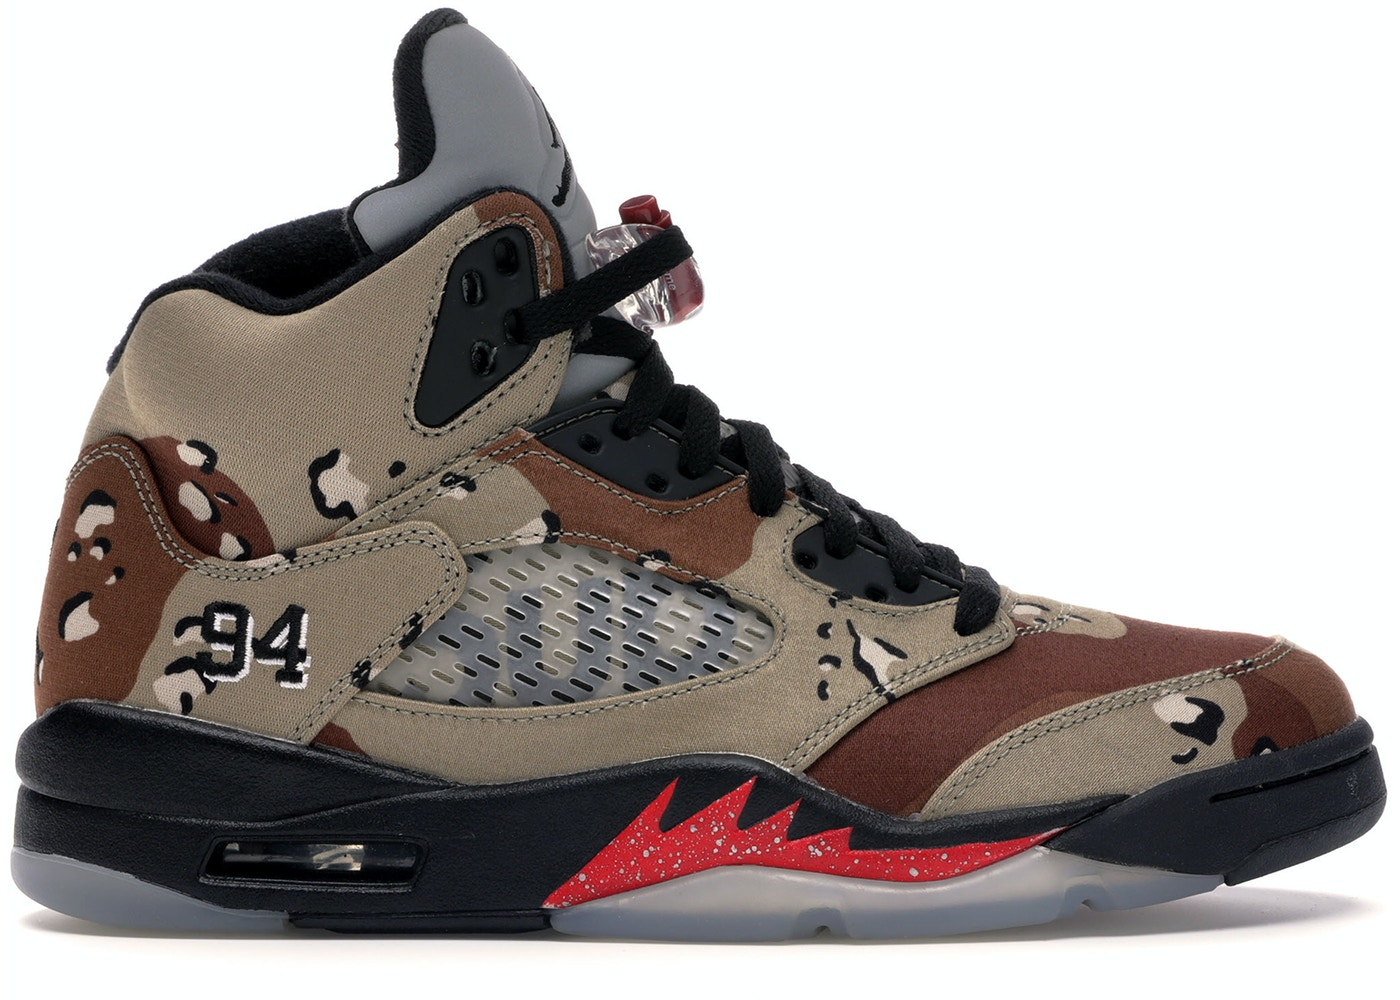 finest selection 3191a f5257 Buy Air Jordan 5 Shoes & Deadstock Sneakers